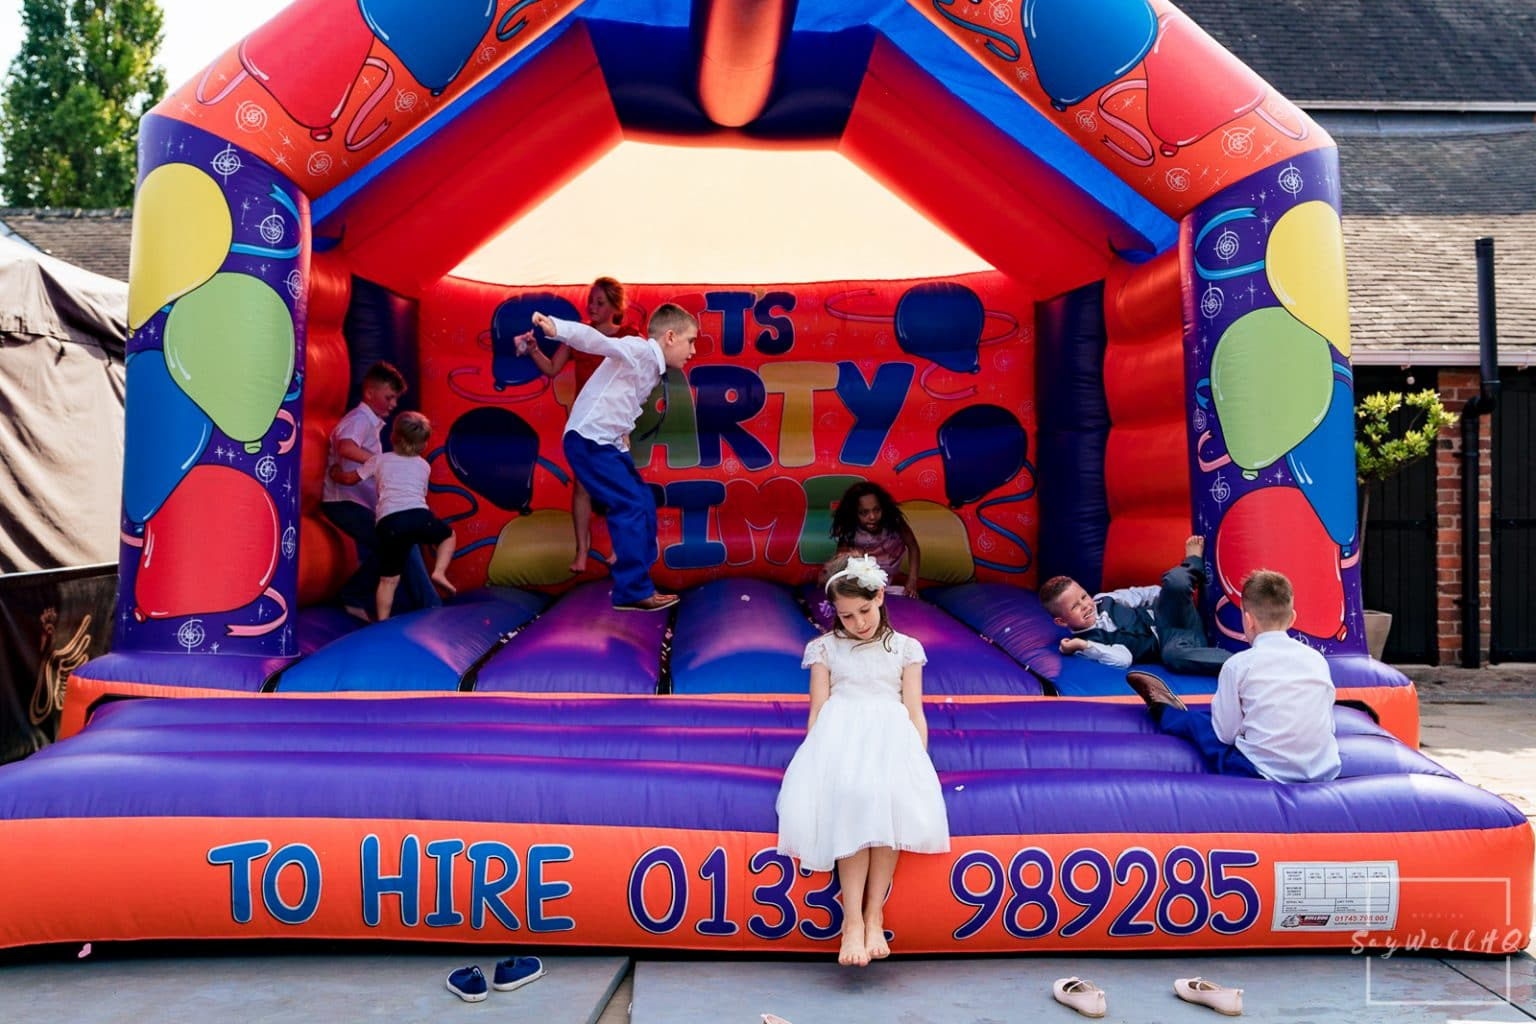 Swancar Farm Wedding Photography - wedding guests enjoy the bouncy castle at a wedding at Swancar Farm